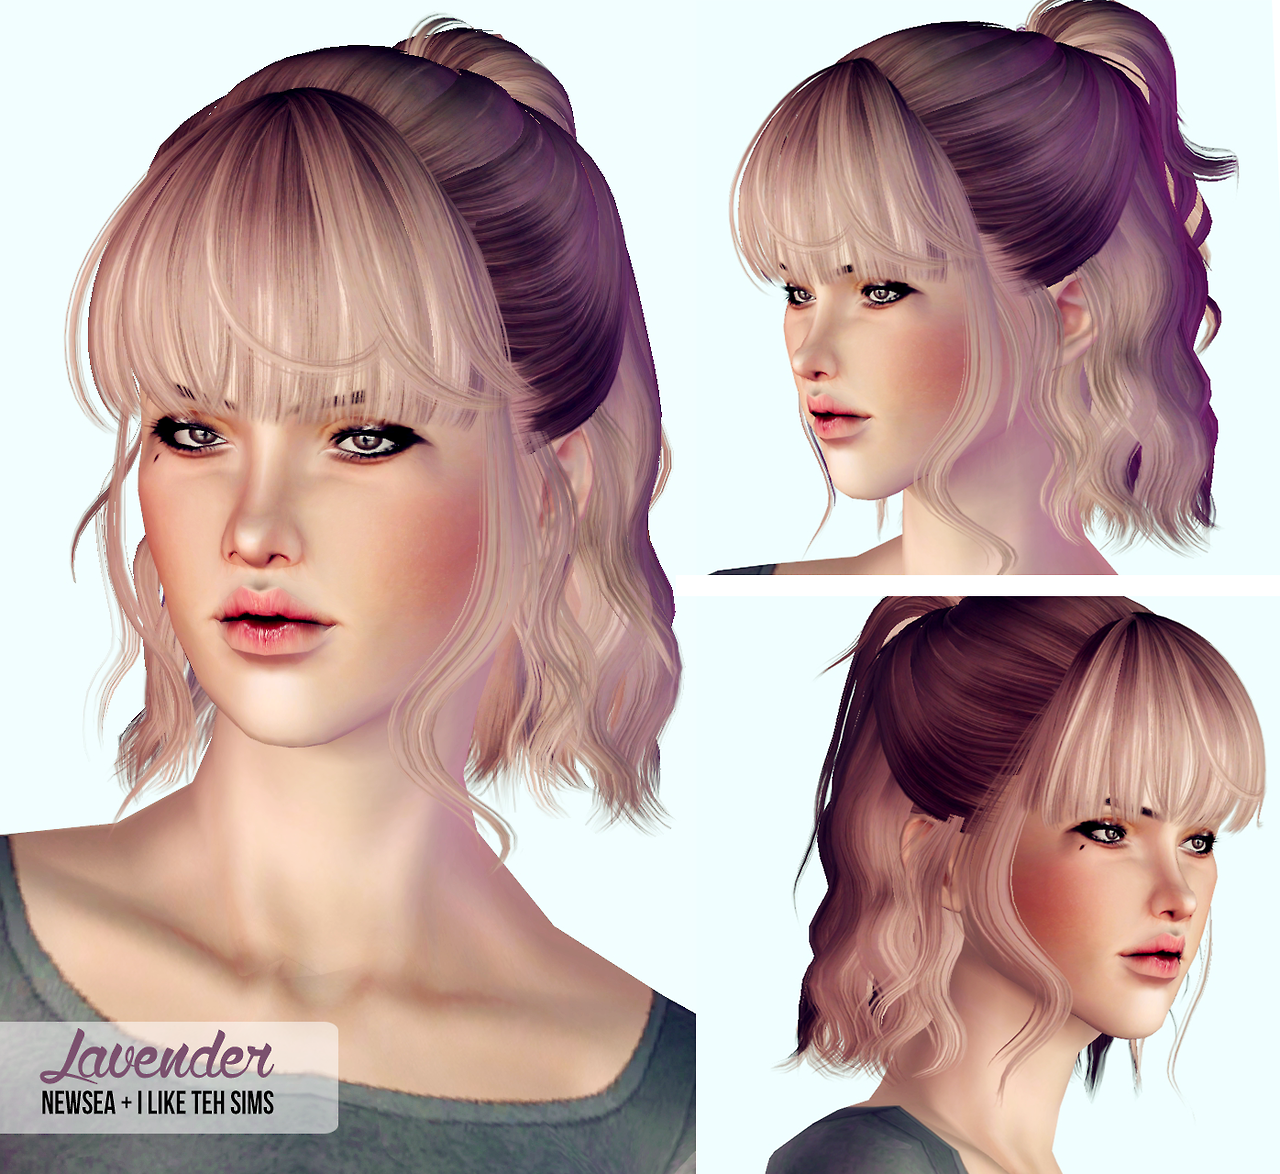 Sims 2 Hairstyles: My Sims 3 Blog: Hair Retextures By I Like Teh Sims